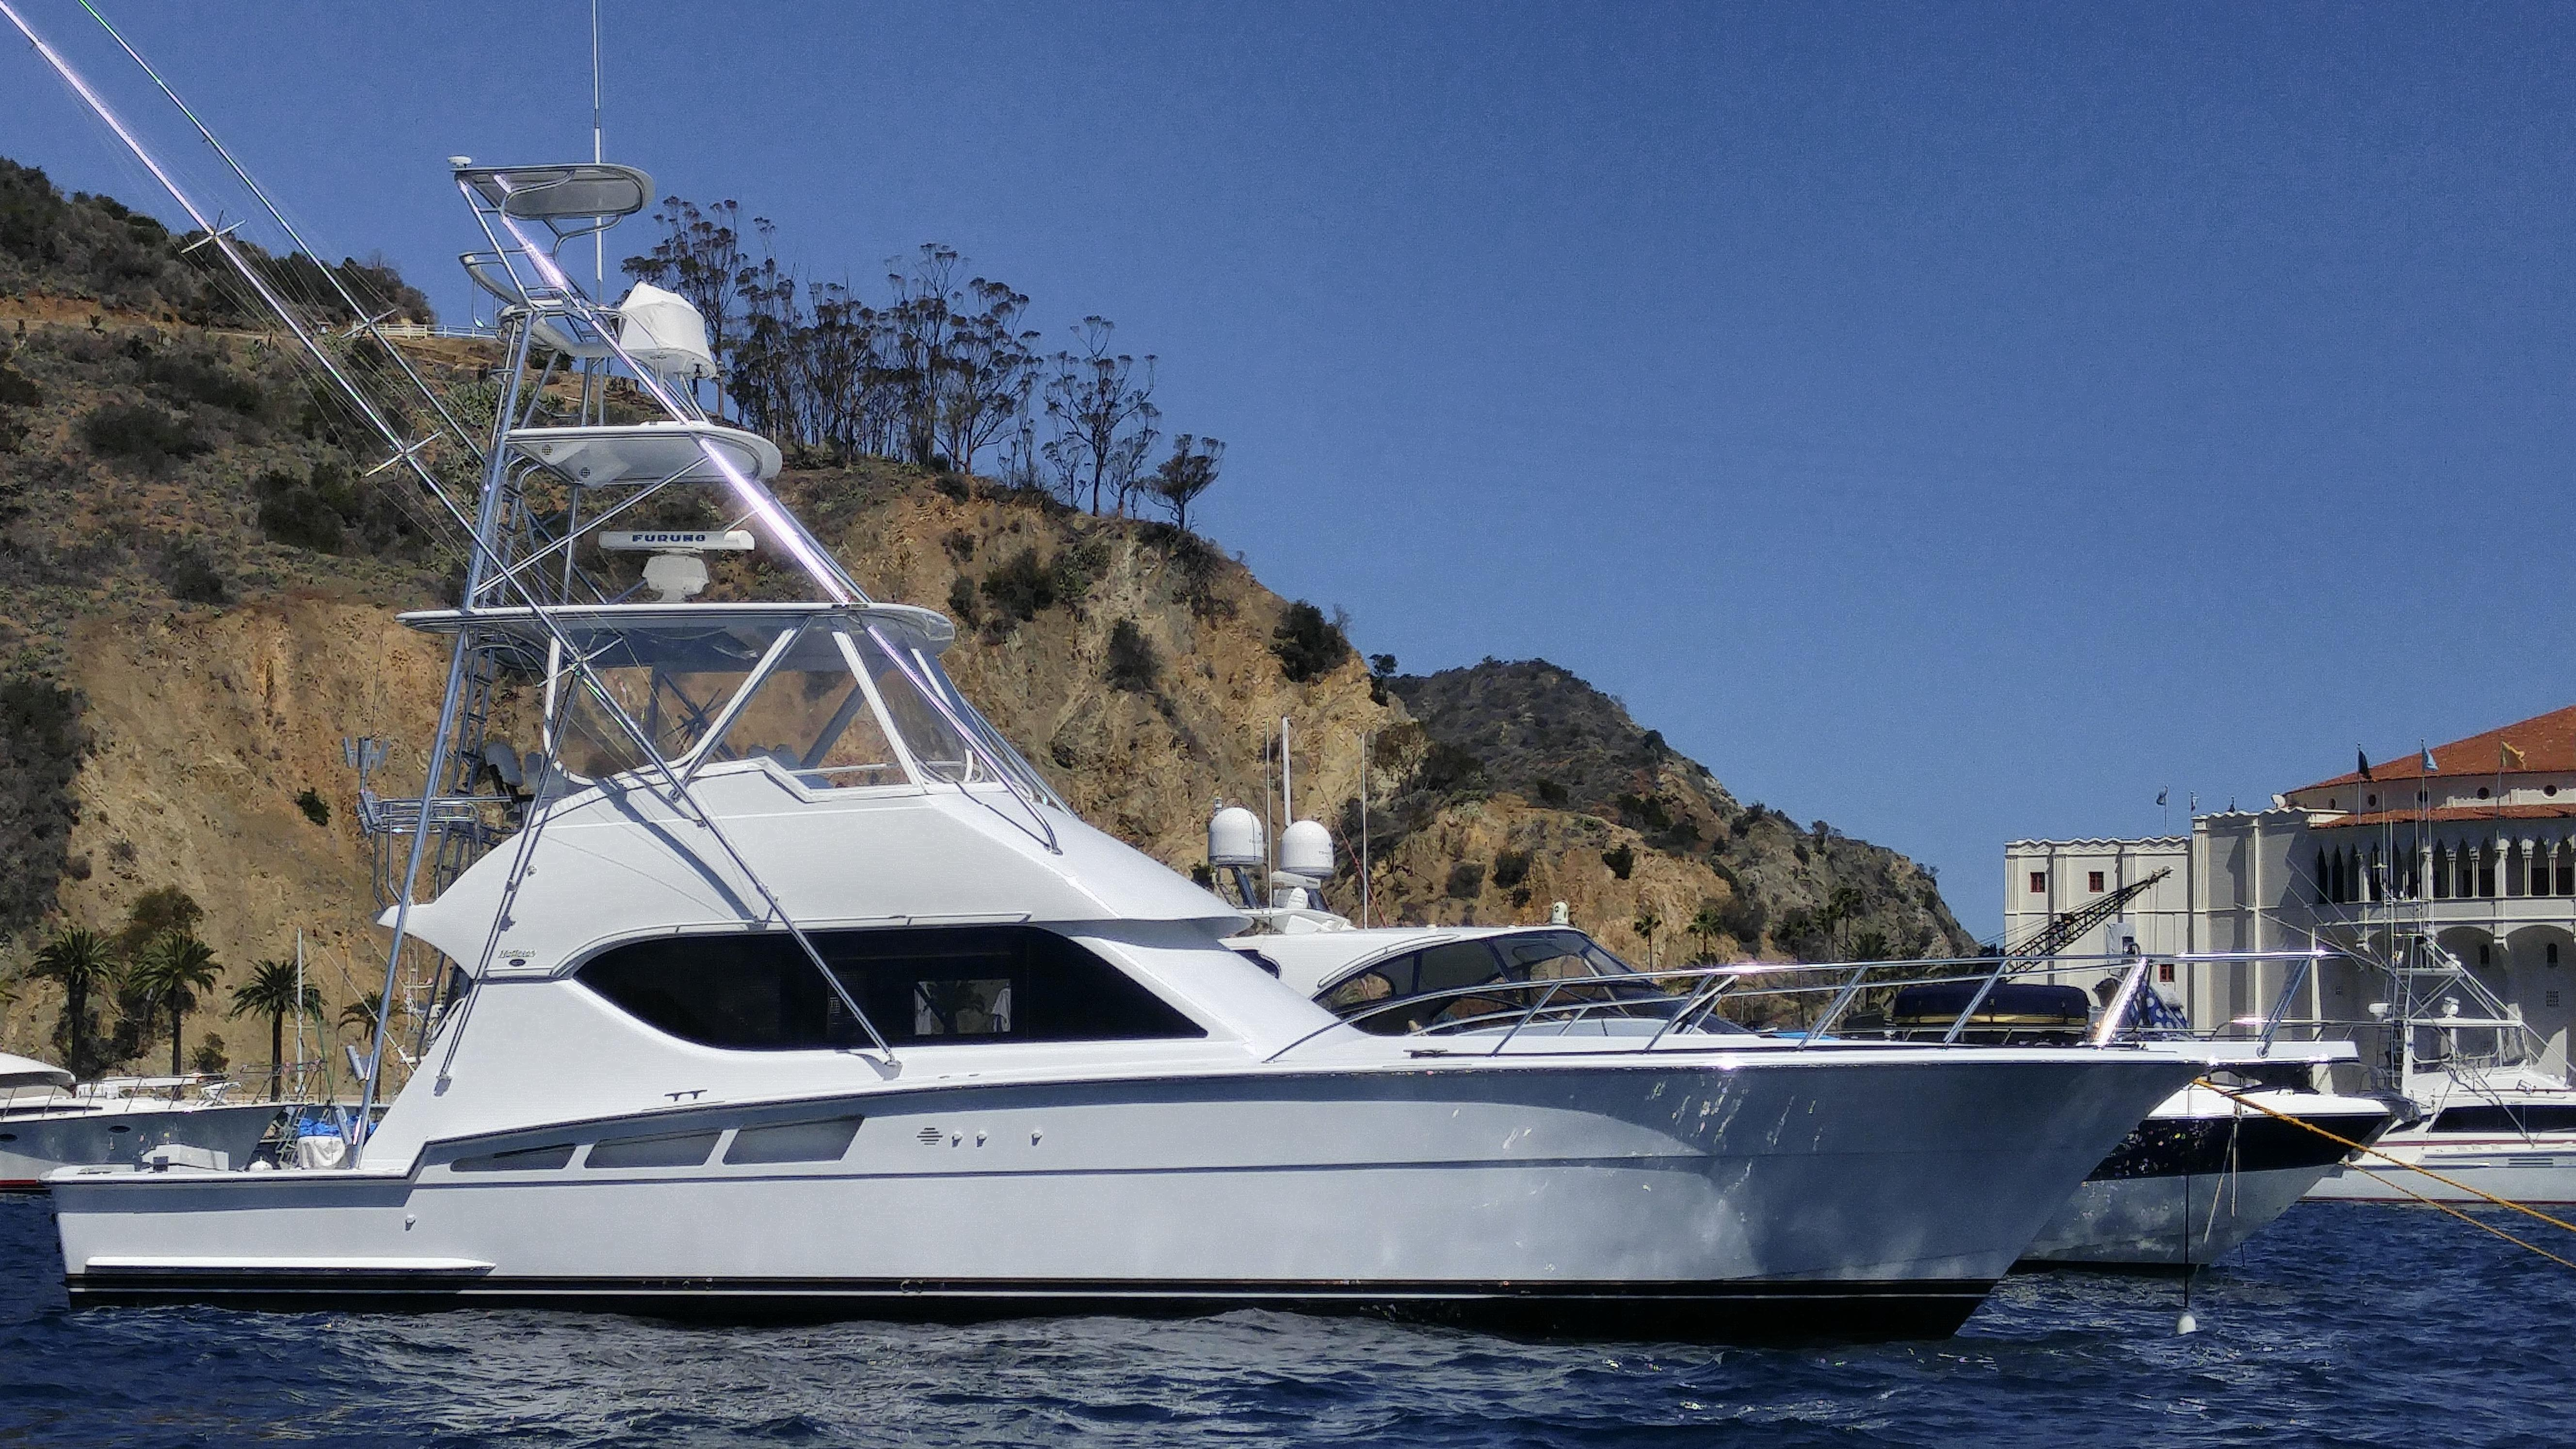 50 hatteras 2003 chasing sunshine newport beach, california sold on internet of things diagrams hatteras wiring diagram #44